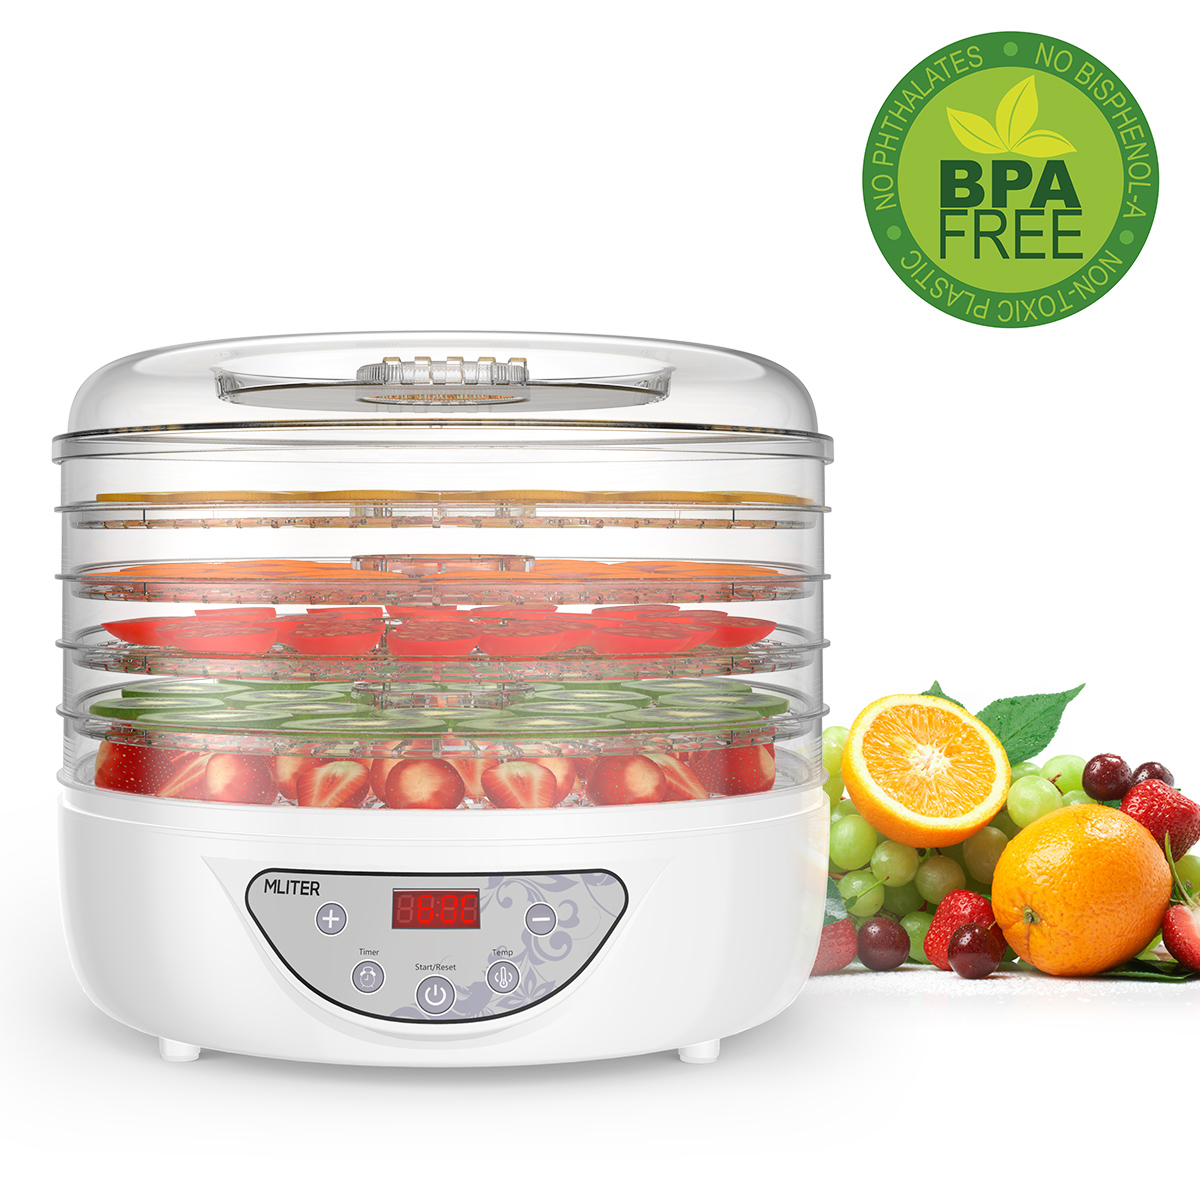 Mliter 5 Stackable Tray Digital Food Dehydrator Electric Food Preserver Vegetable Flower Snack Dryer with Countdown Function Time Control and Automatically Stop Digital Display Control Panel